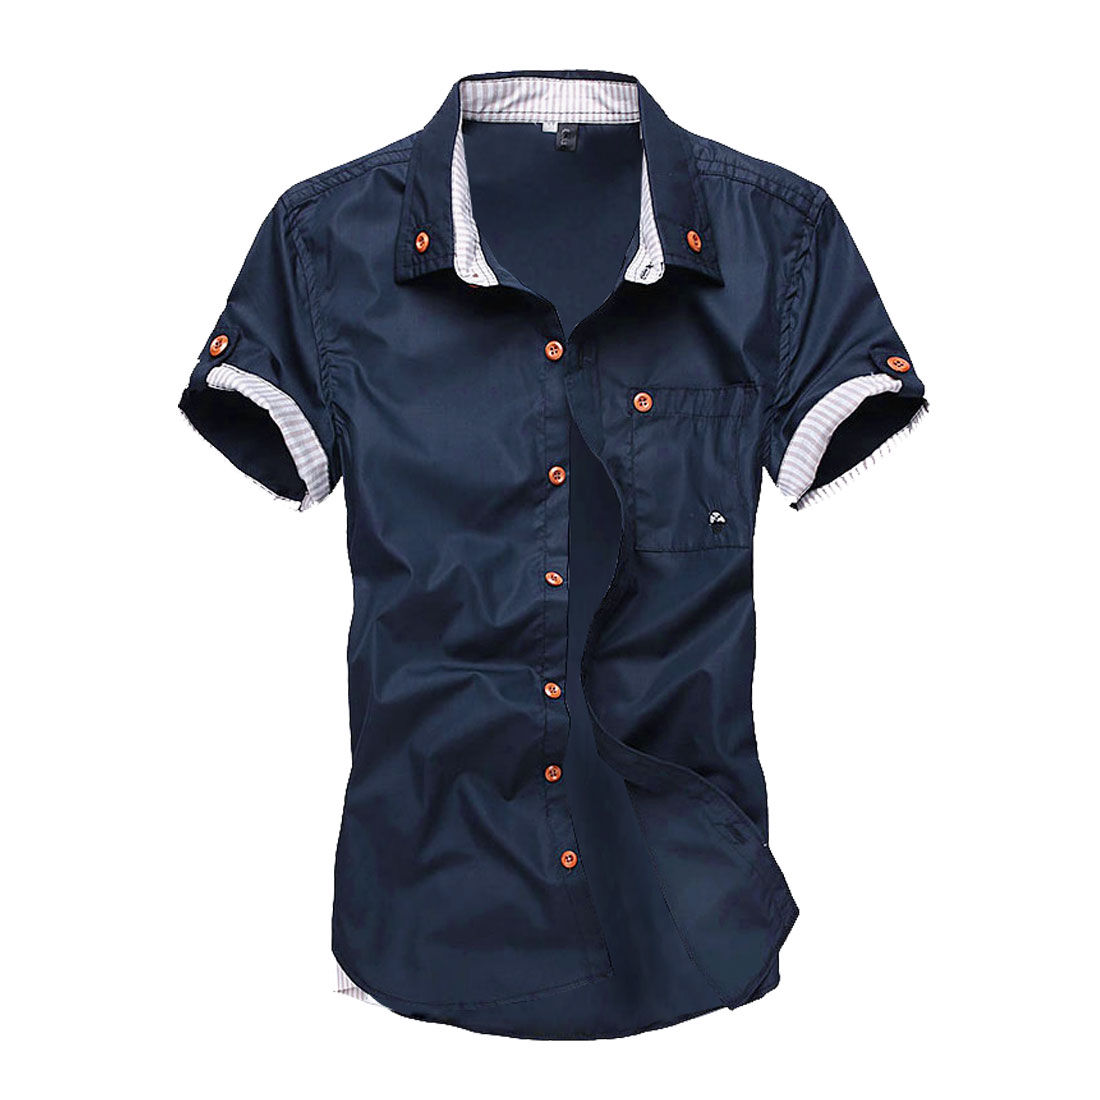 Men Spliced Pocket Buttons Front Short-sleeved Shirt Dark Blue M